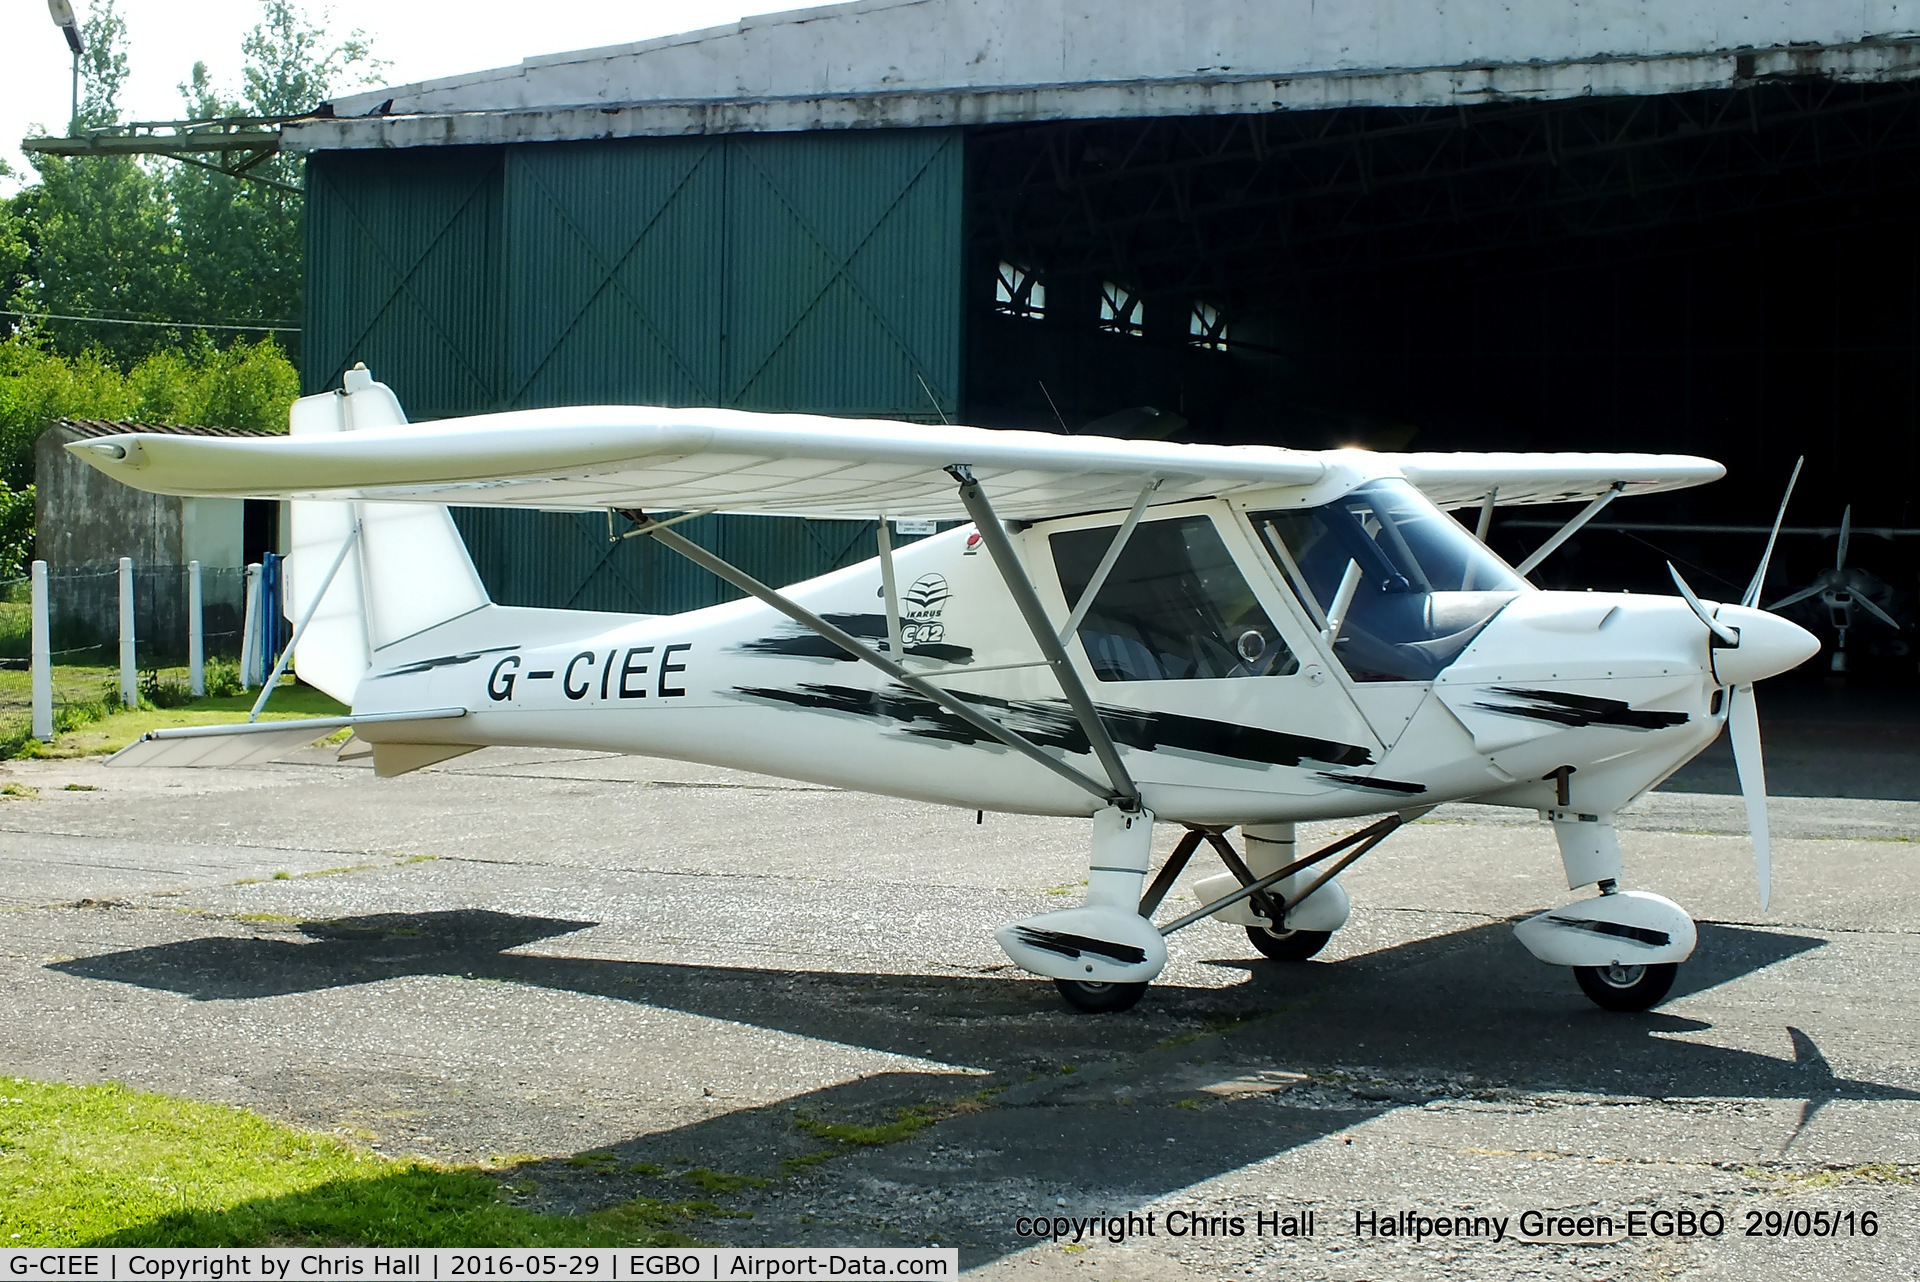 G-CIEE, 2013 Comco Ikarus C42 FB100 Bravo C/N 1311-7289, at Halfpenny Green